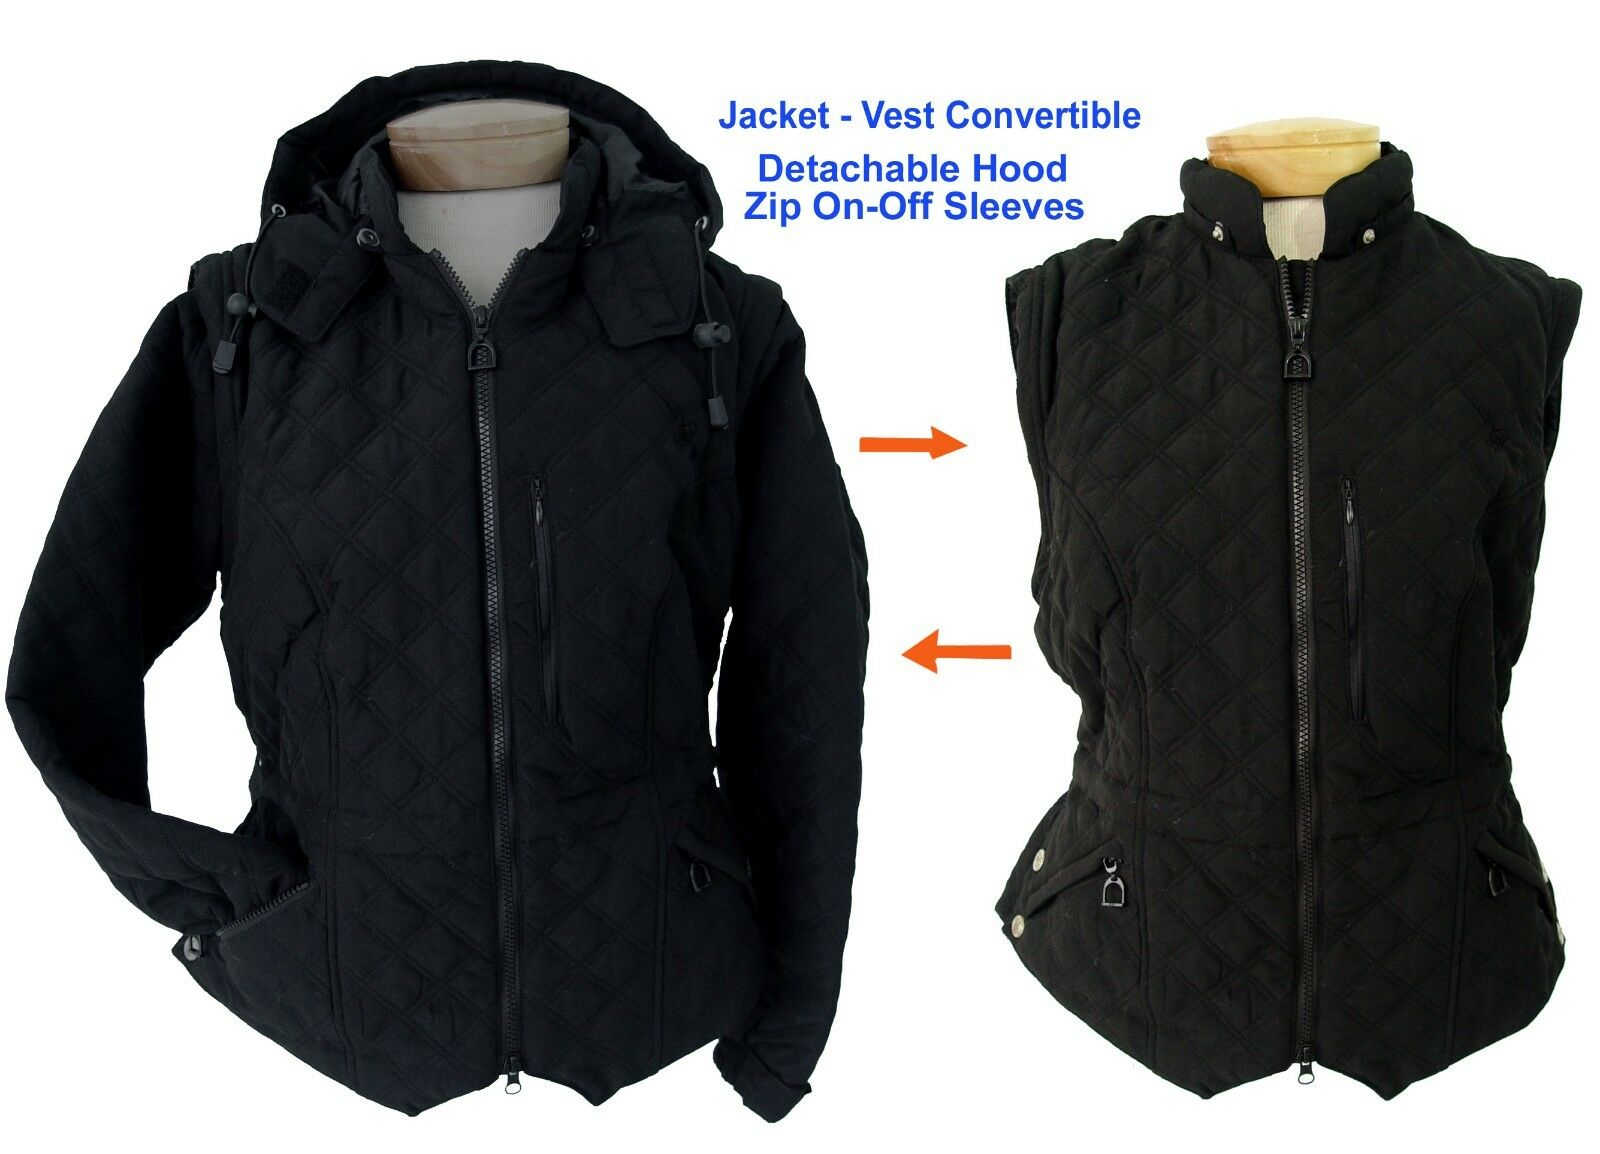 equitazione Jacket with Removable Sleeves & Hood. Turns into vest